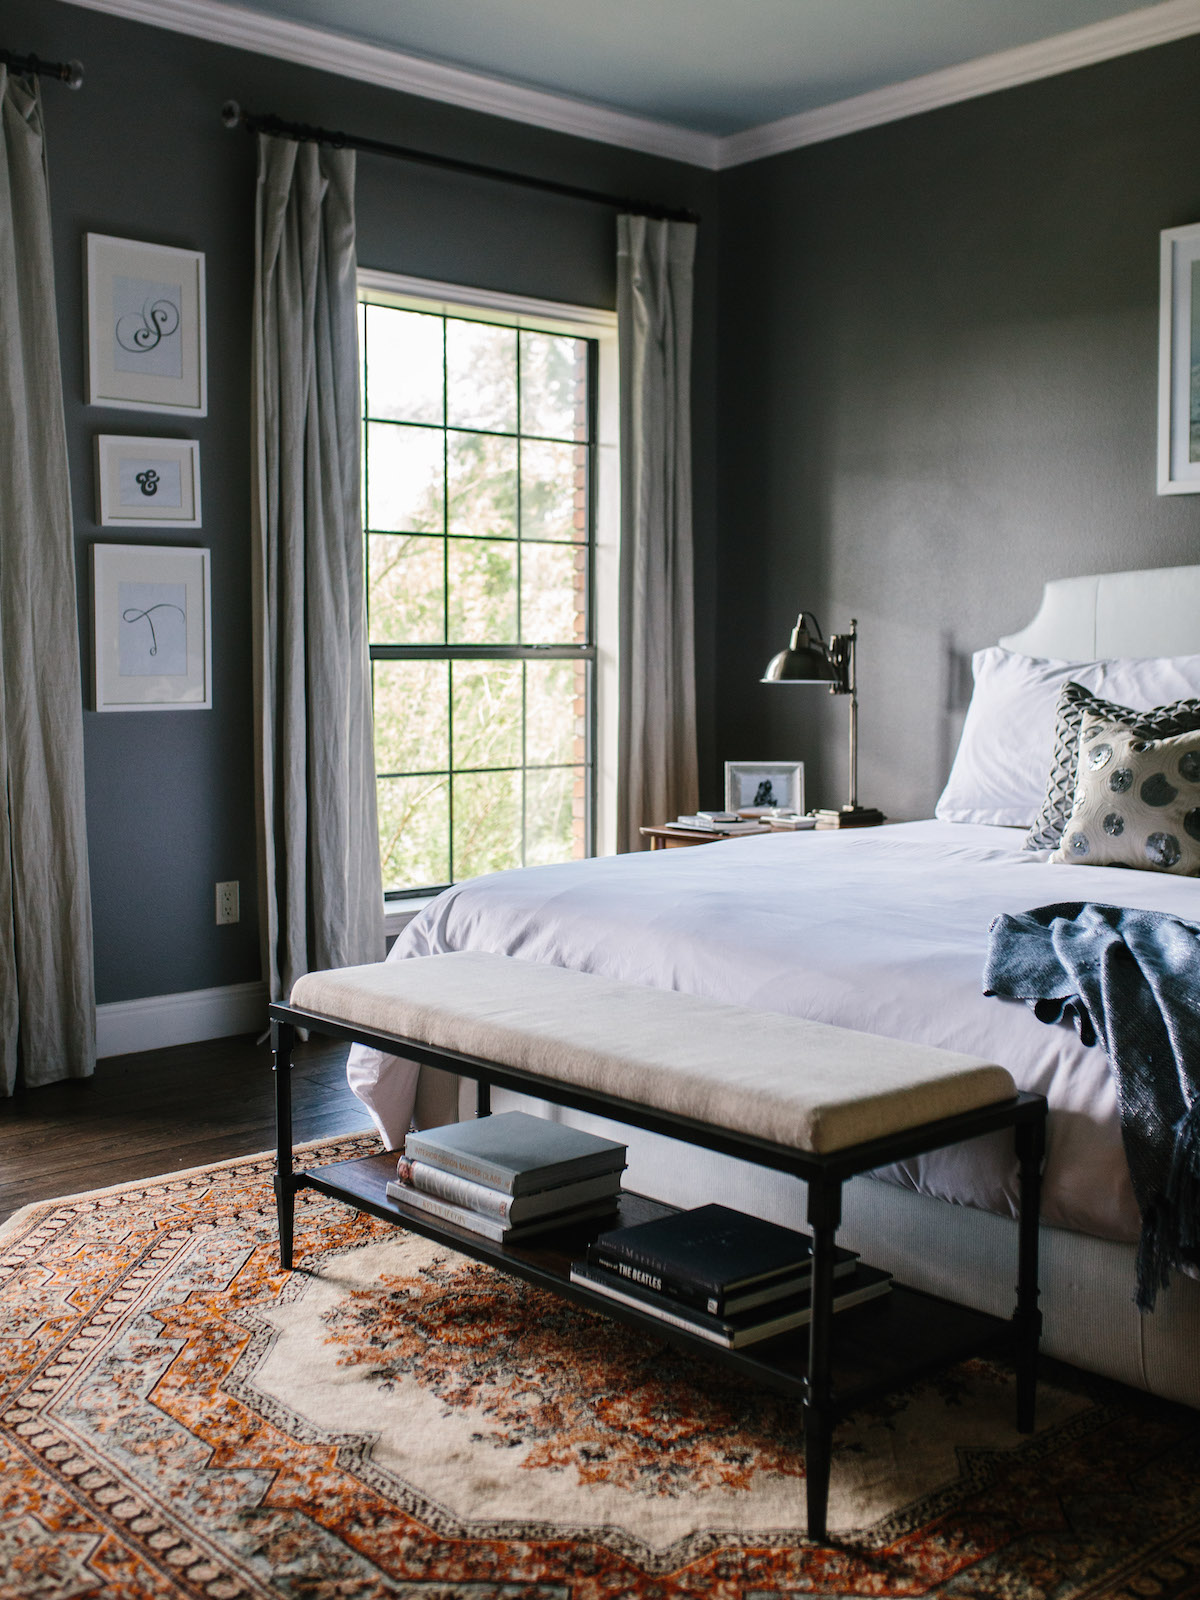 Luxury I generally prefer bedrooms to be calm and relaxing with a natural ease on the eye I personally don ut want to sleep in a space that makes me feel anxious